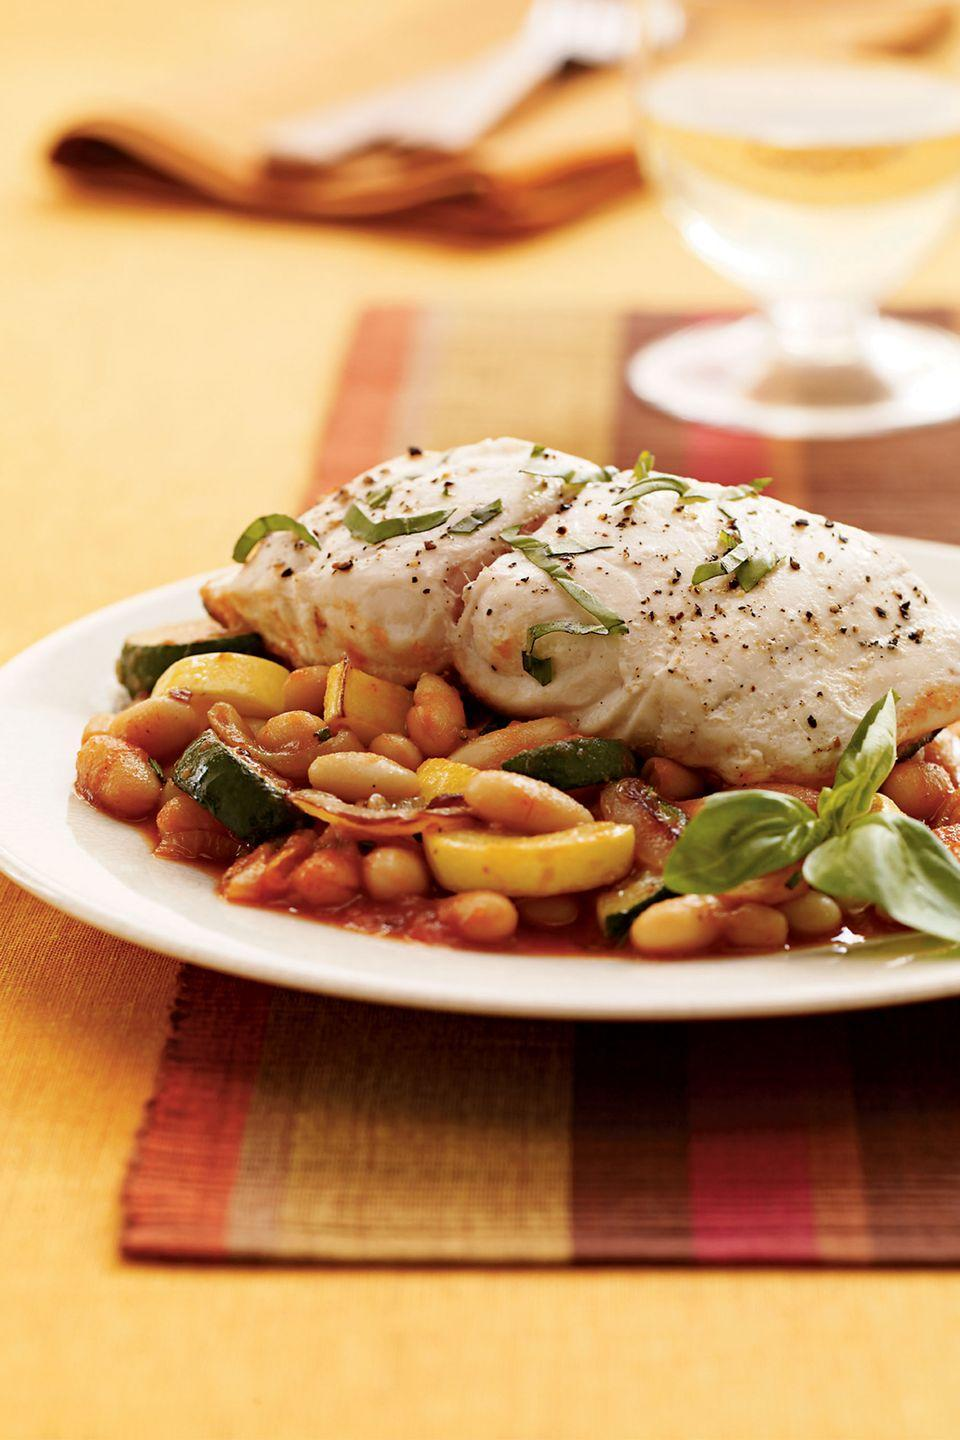 "<p>No sides are needed for this light and colorful fish dish, with striped bass atop a mix of cannellini beans, tomato sauce, rosemary, onion, squash, and garlic.</p><p><a href=""https://www.womansday.com/food-recipes/food-drinks/recipes/a9206/tuscan-bass-squash-beans-121116/"" rel=""nofollow noopener"" target=""_blank"" data-ylk=""slk:Get the Tuscan Bass with Squash and Beans recipe."" class=""link rapid-noclick-resp""><em><strong>Get the Tuscan Bass with Squash and Beans recipe.</strong></em></a></p>"